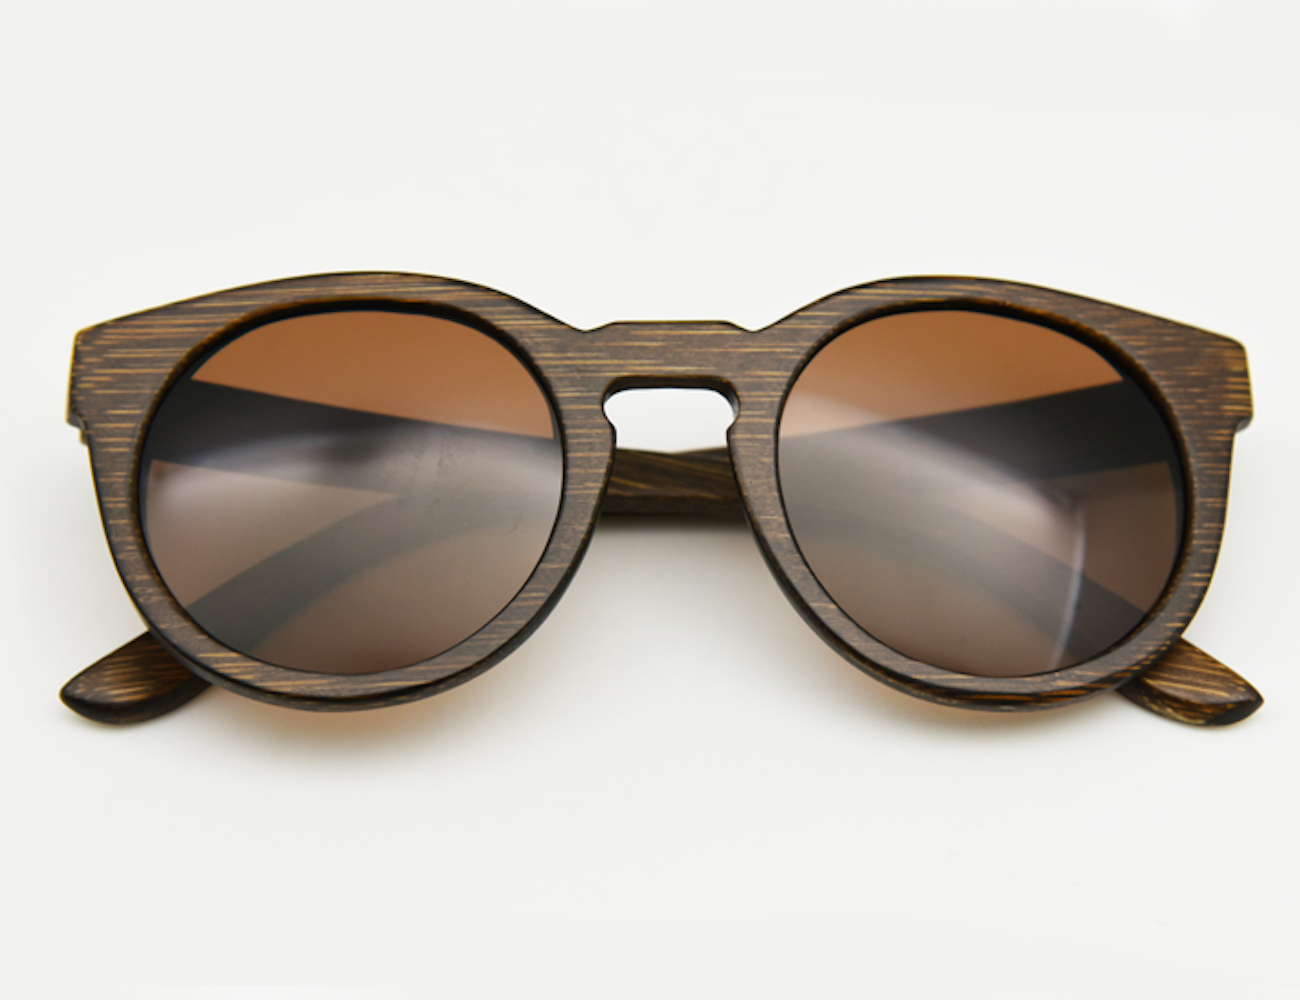 Vintage Wooden Sunglasses